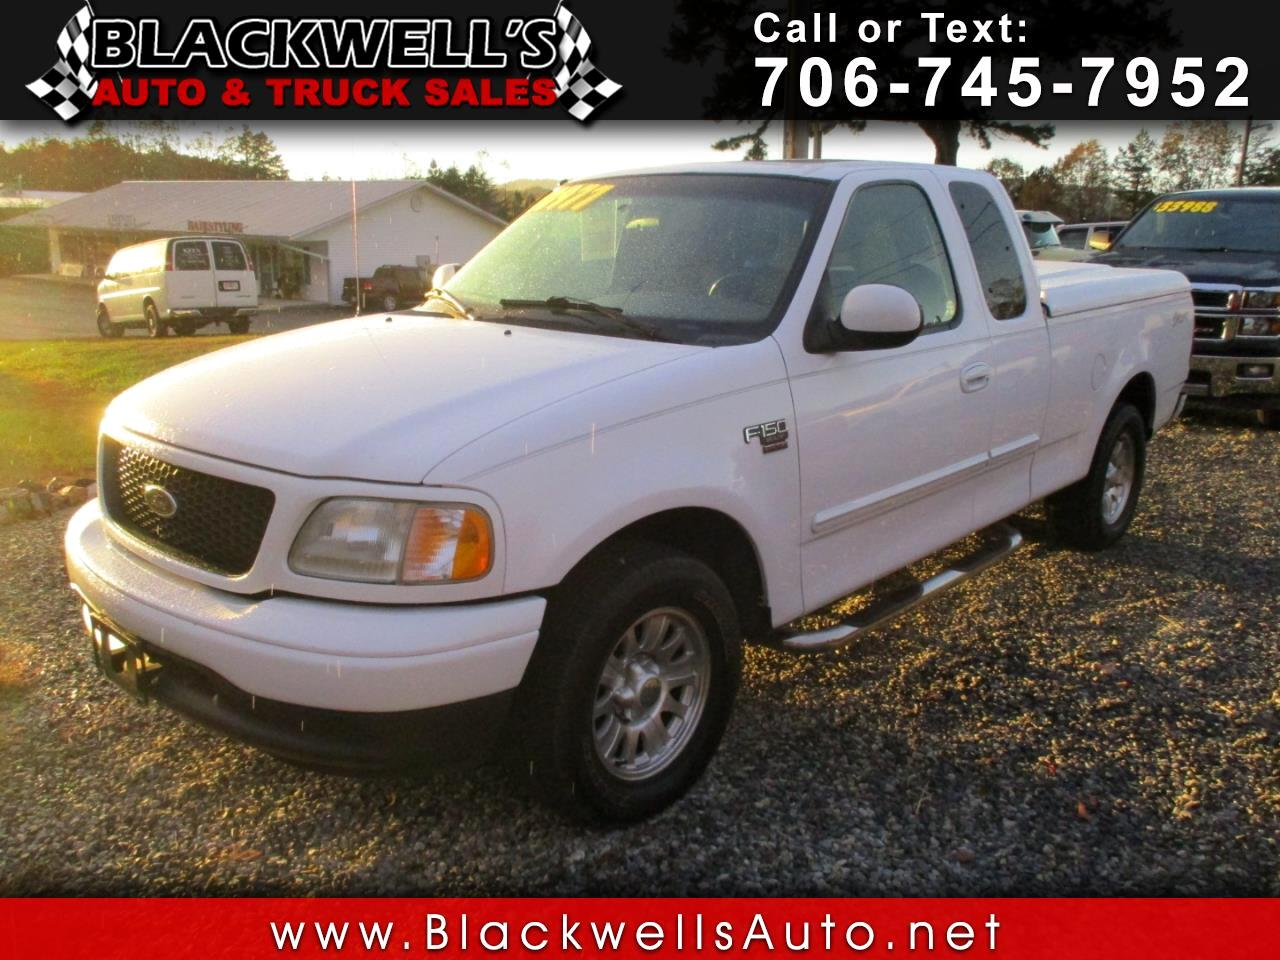 2002 Ford F-150 Supercab 139